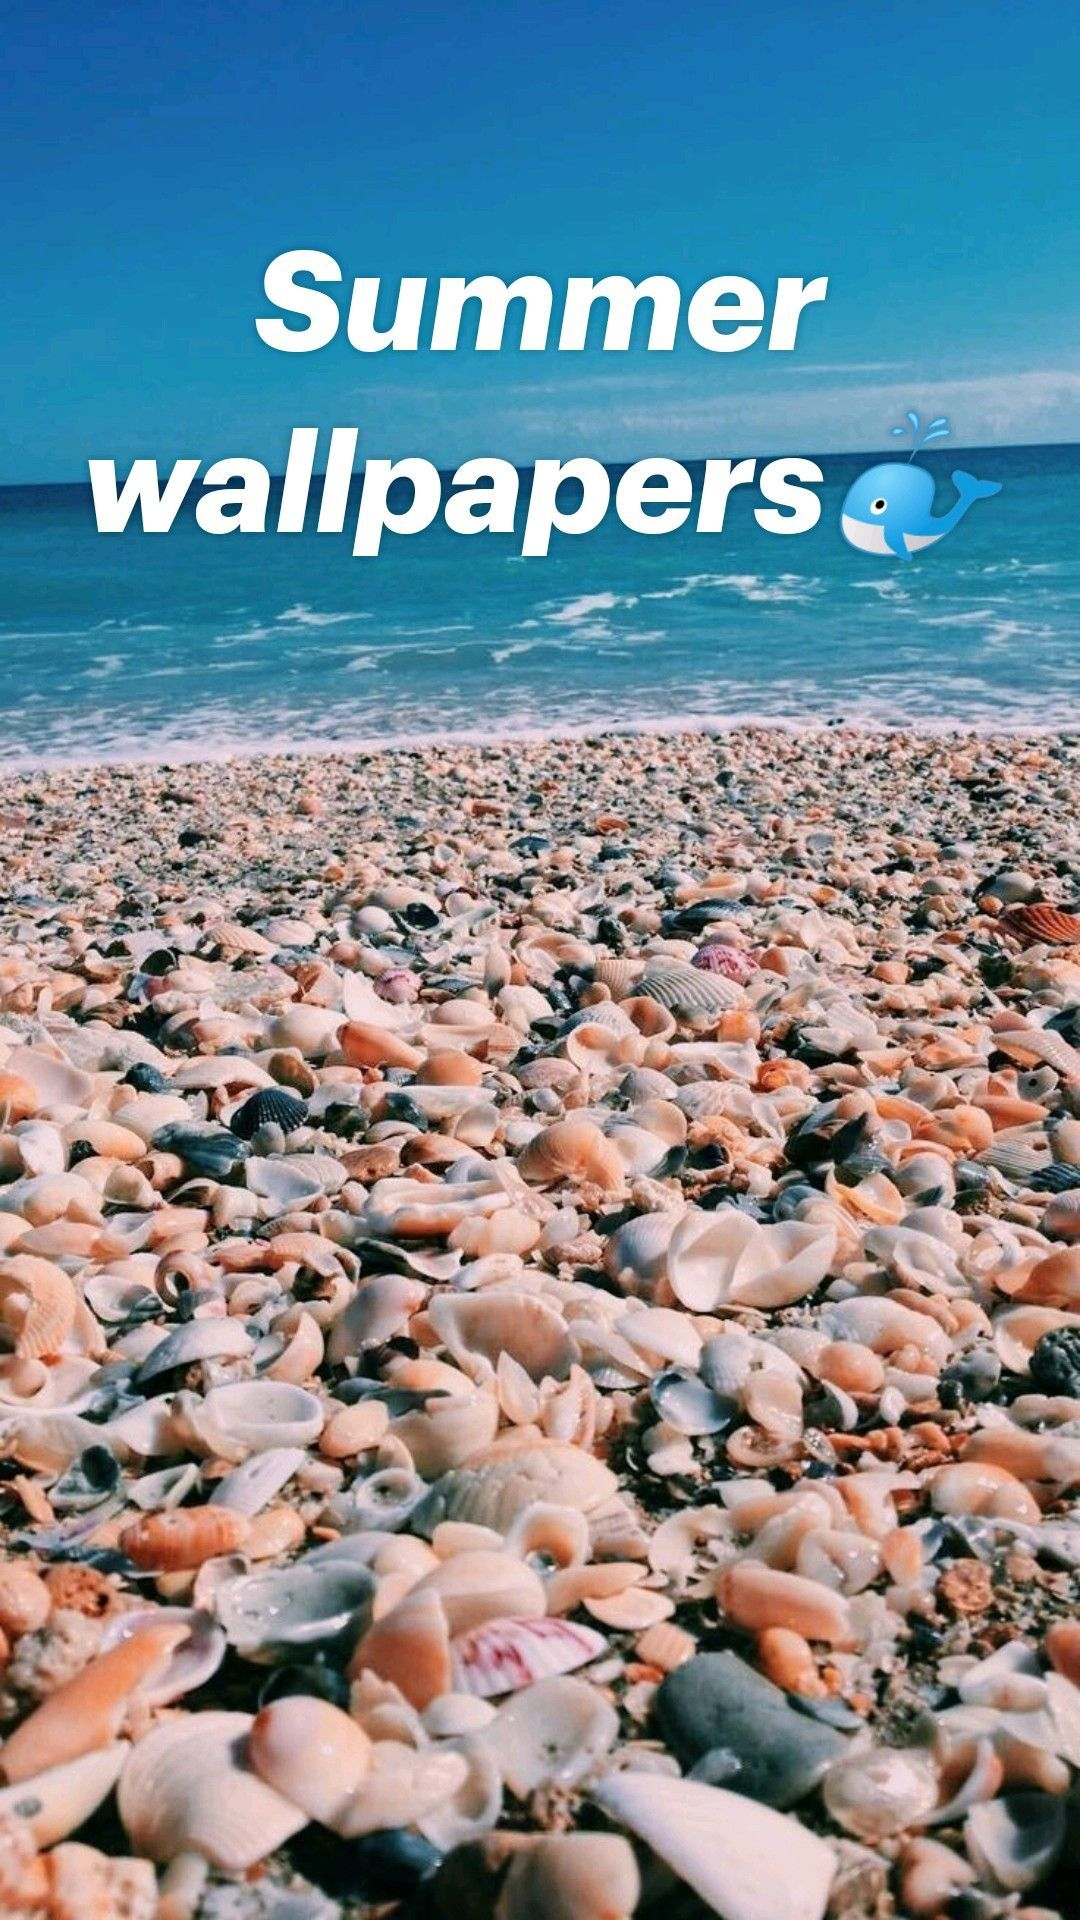 Summer wallpapers🐳 - Betsy Morrow